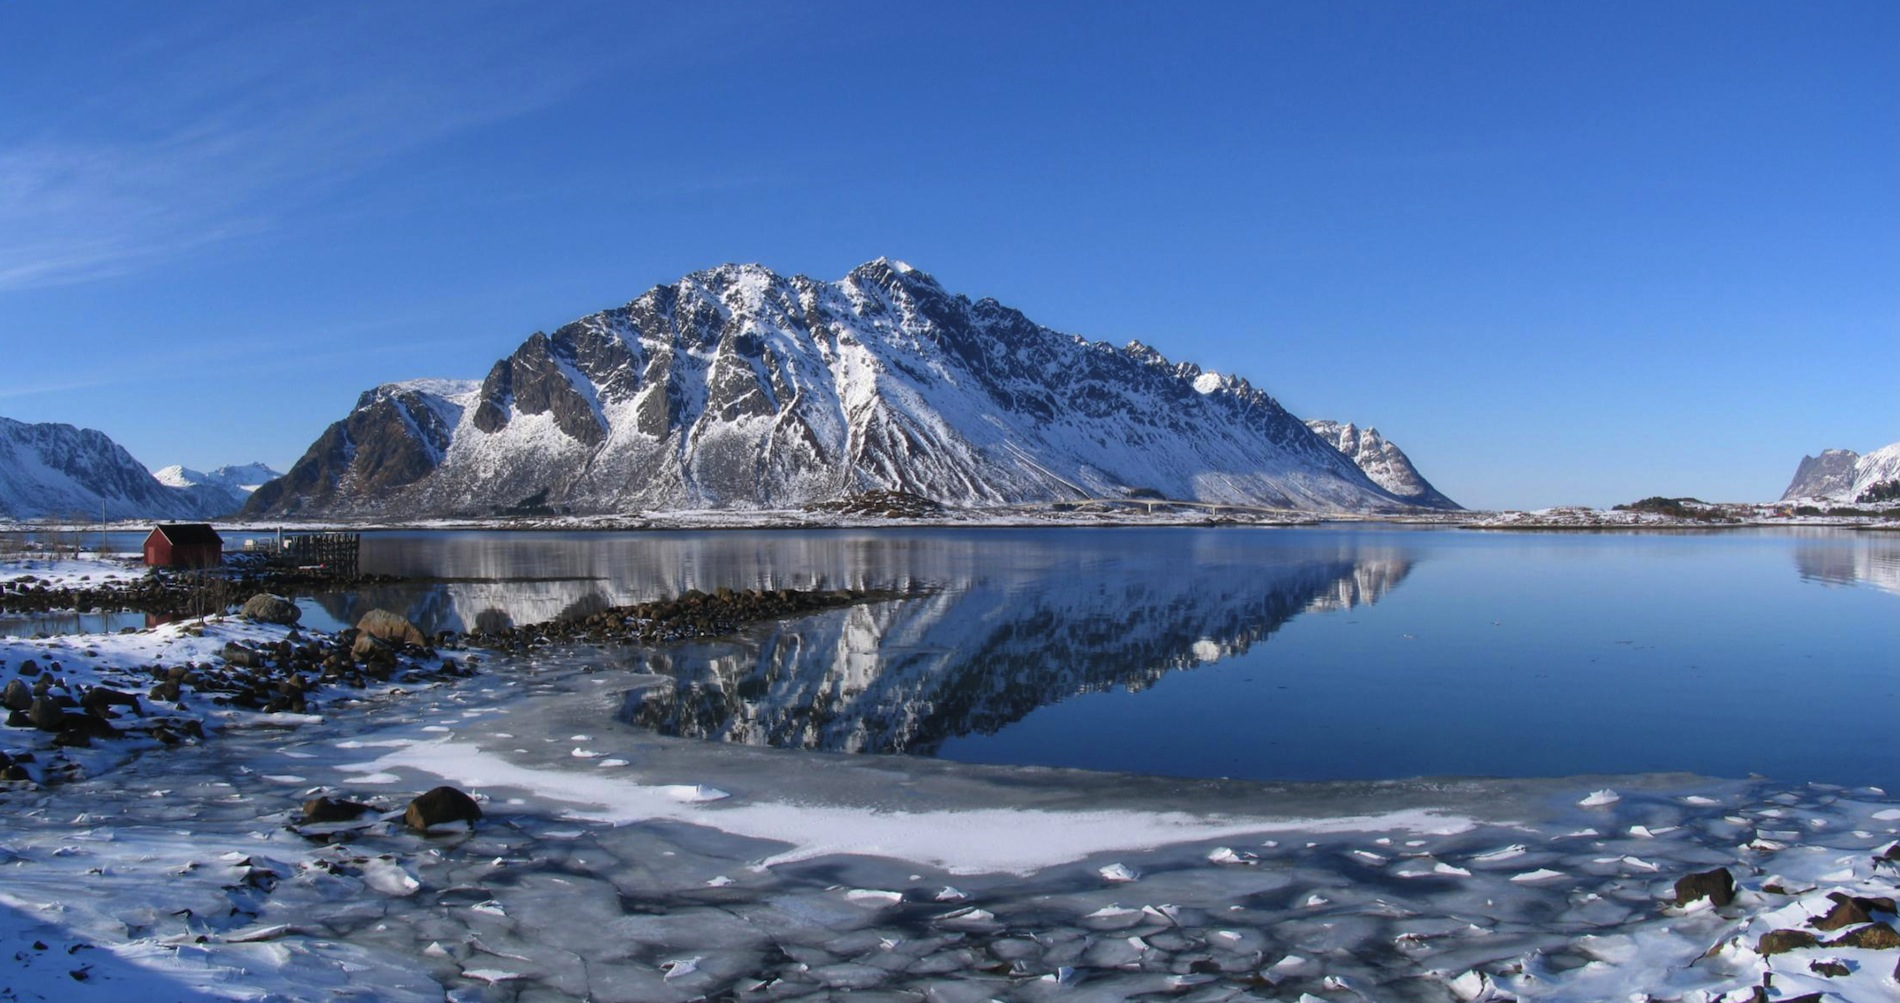 Winter at Lofoten (2008). By Tackbert. Public Domain.